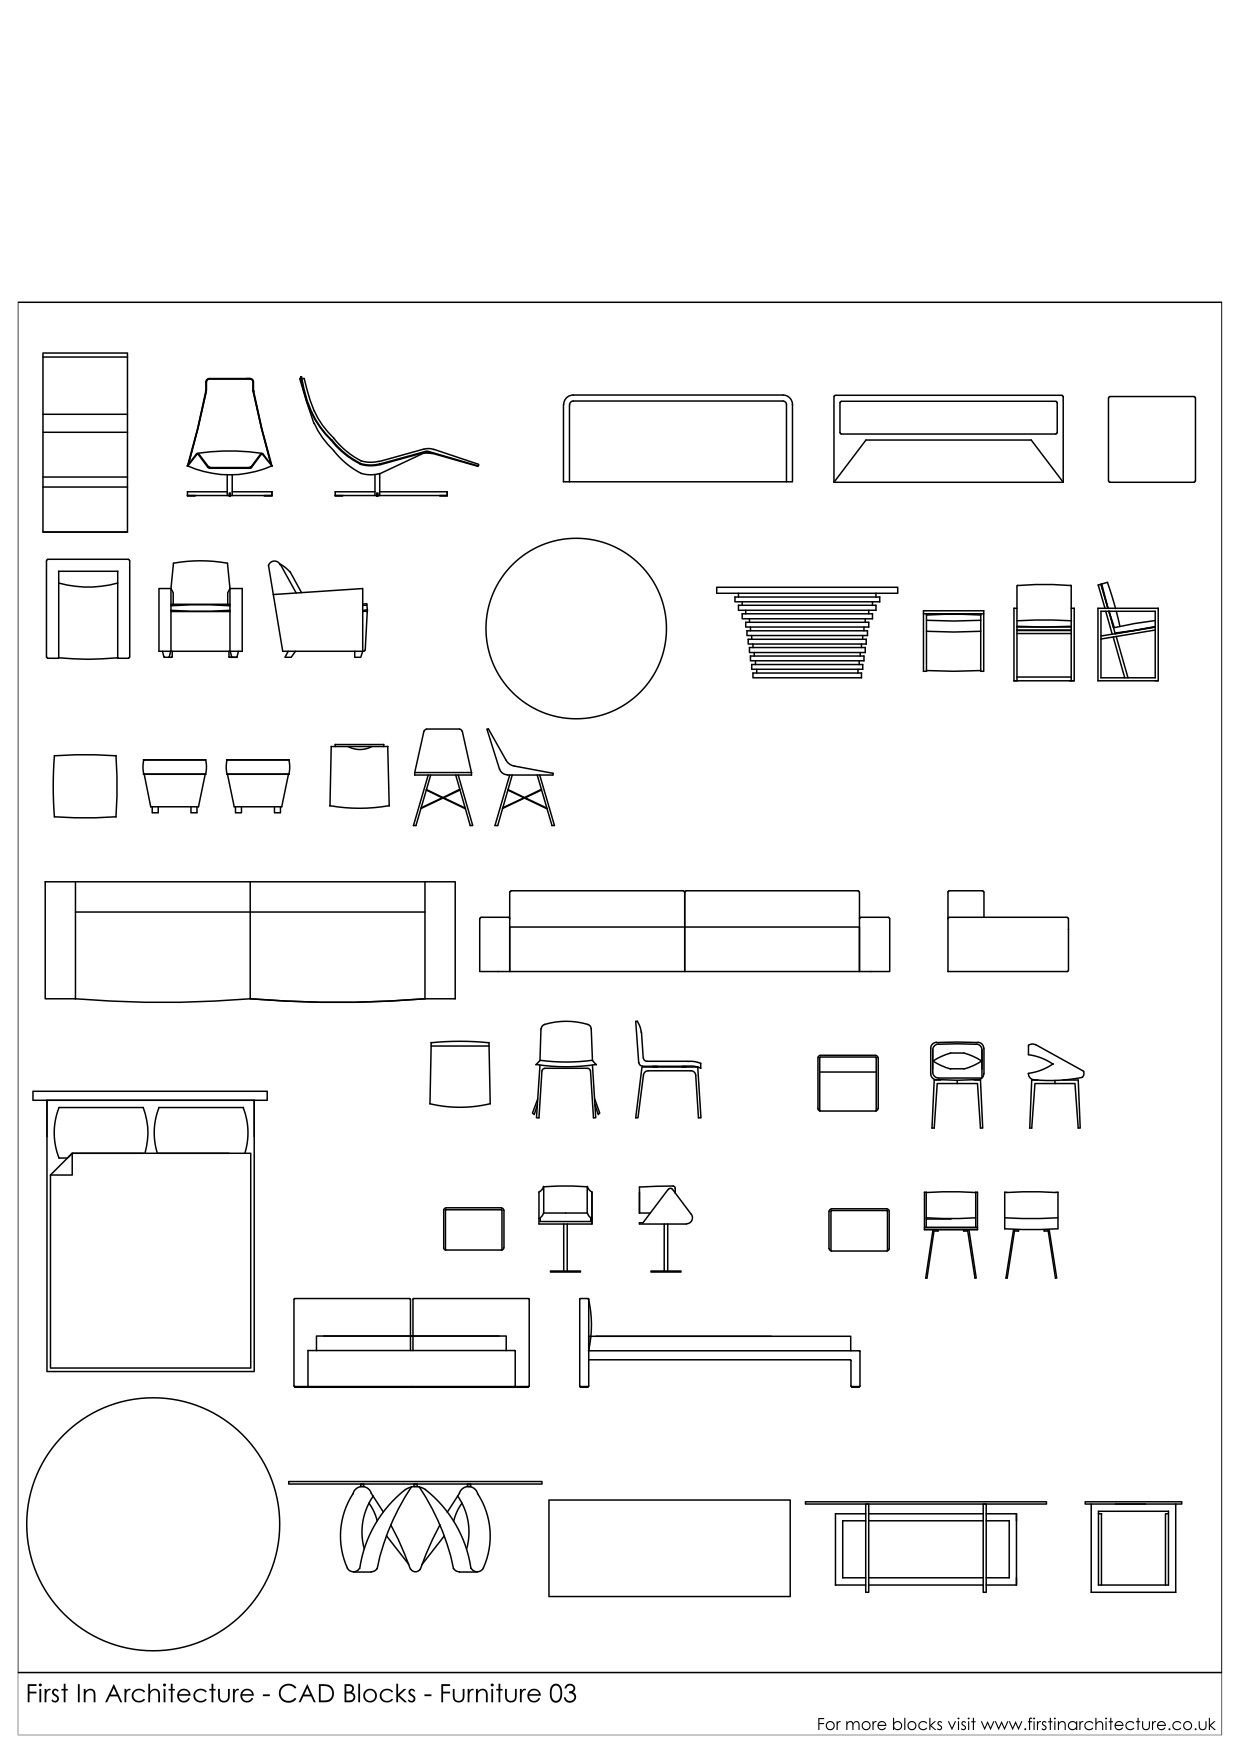 Cad blocks furniture pack 03 first in architecture design pinterest architecture Free bathroom design cad